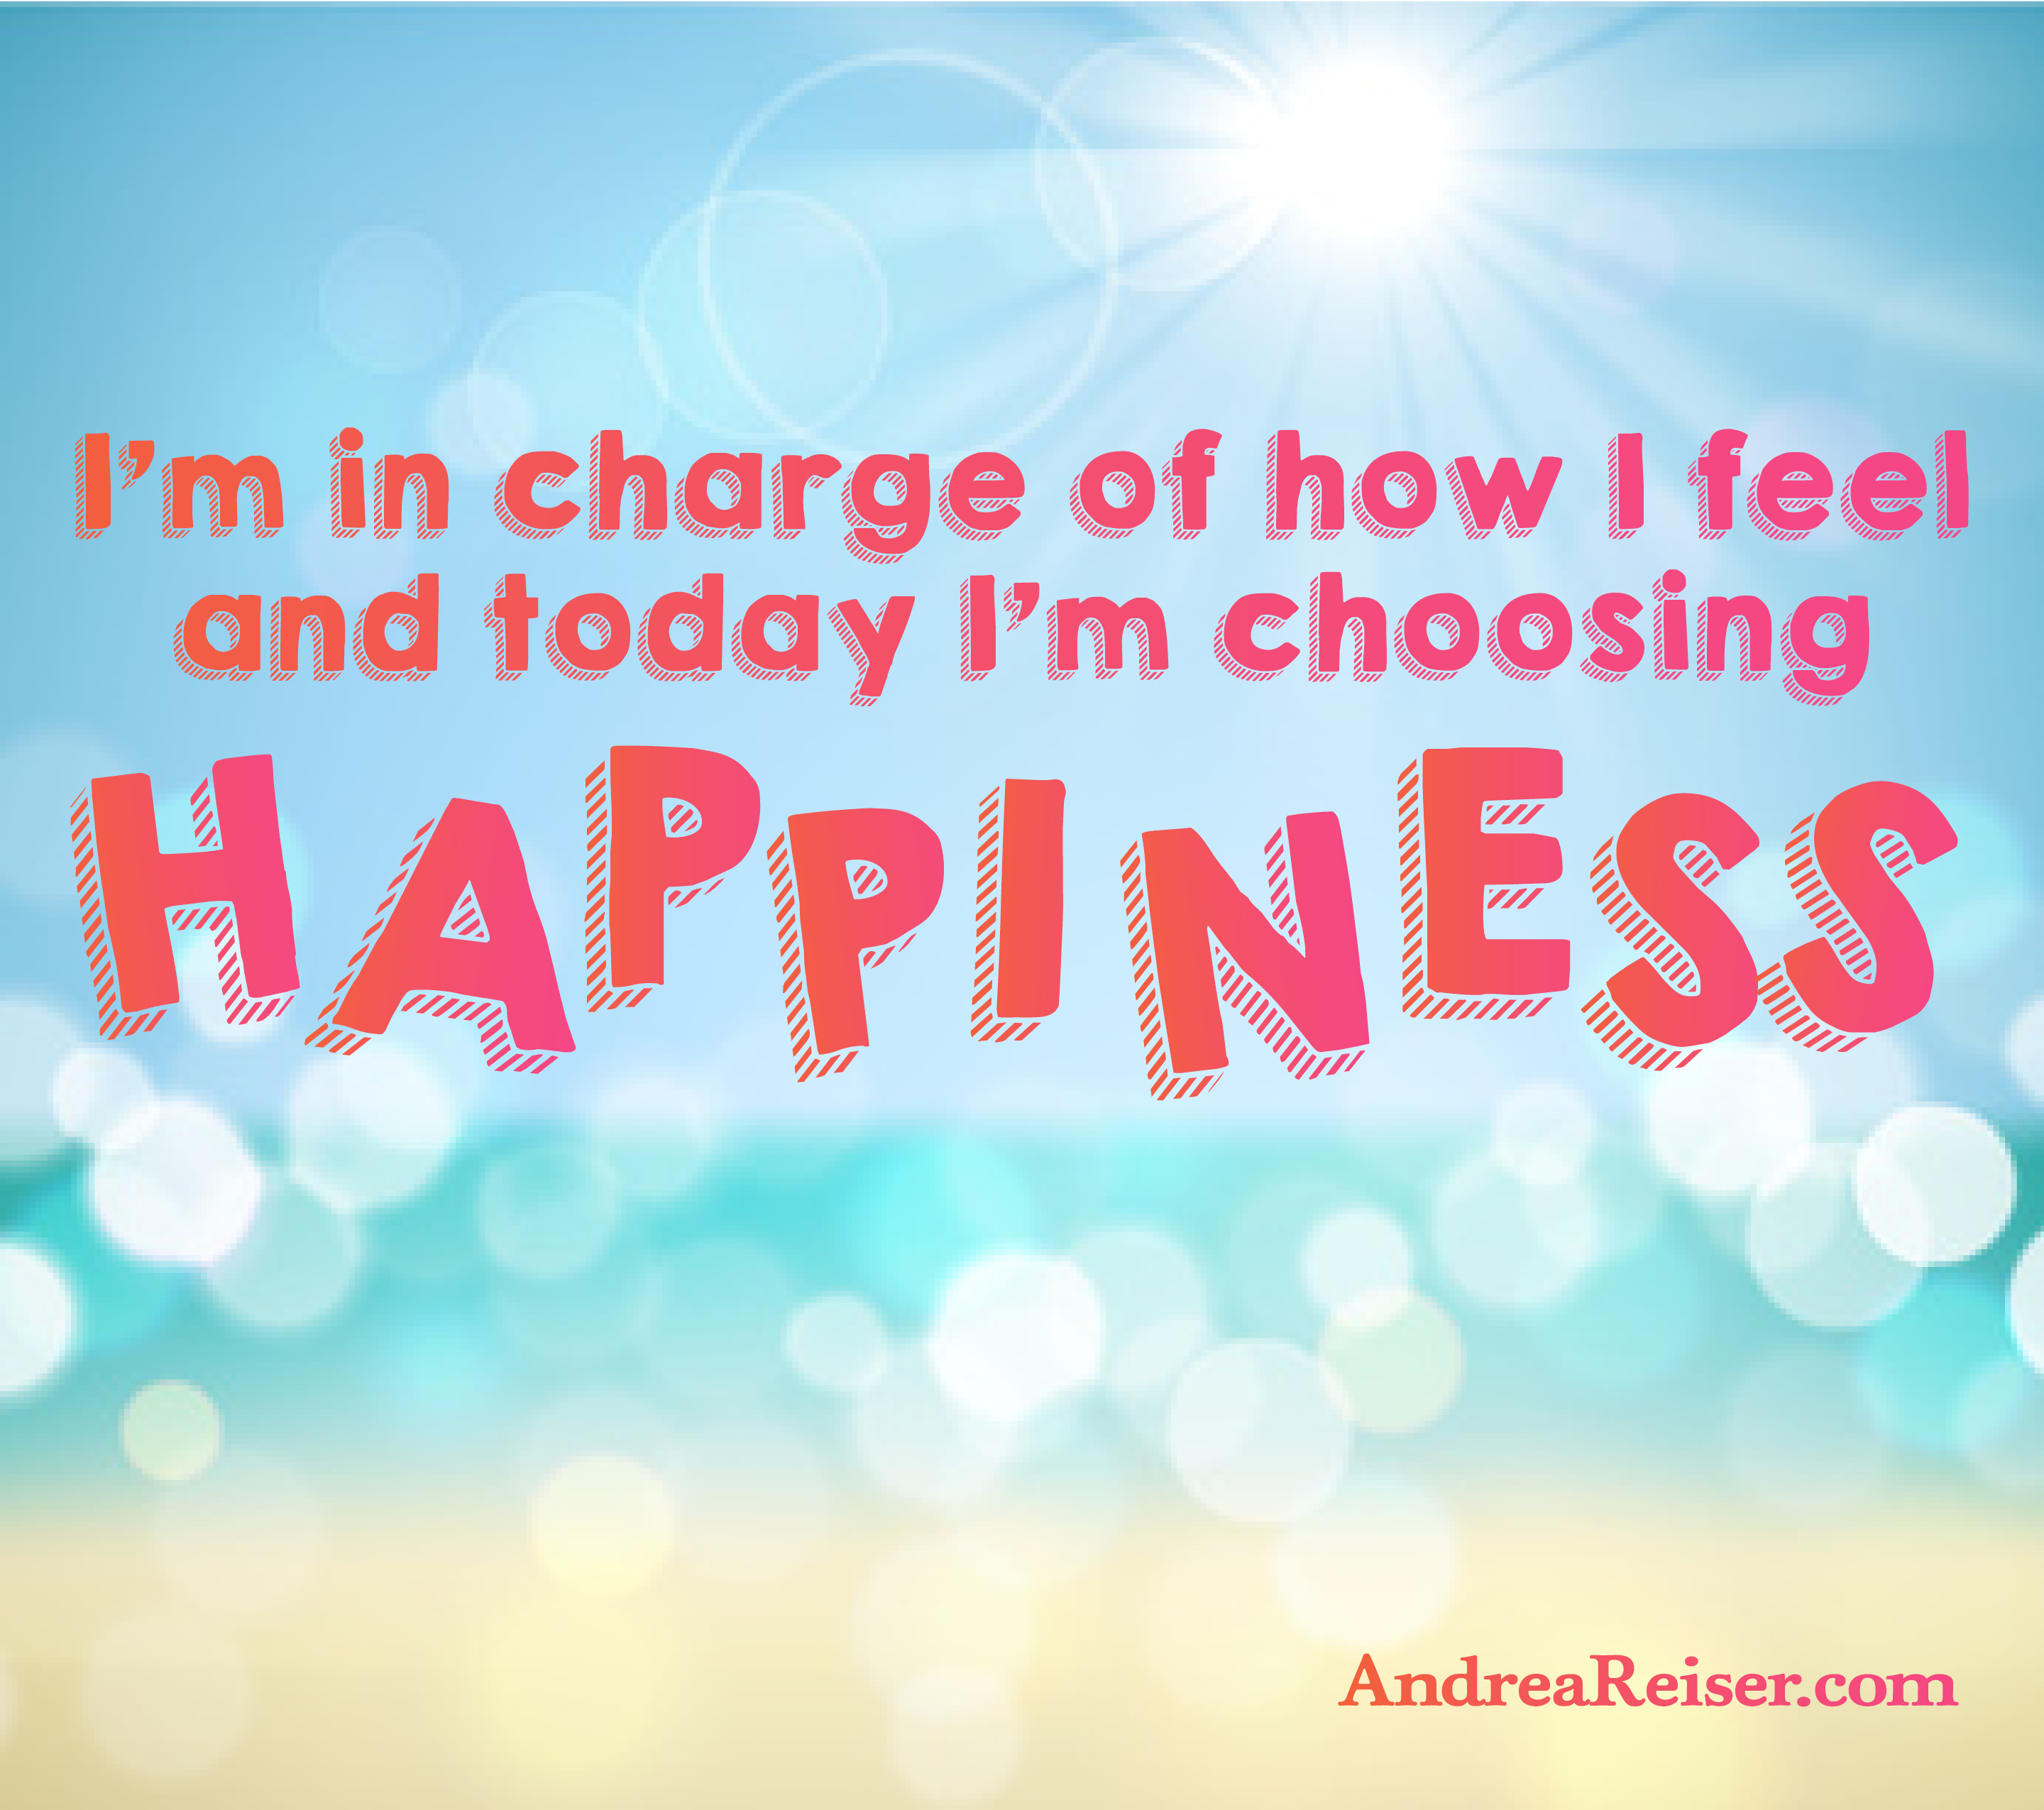 Quote For Today About Happiness Today I'm Choosing Happiness  Andrea Reiser Andrea Reiser